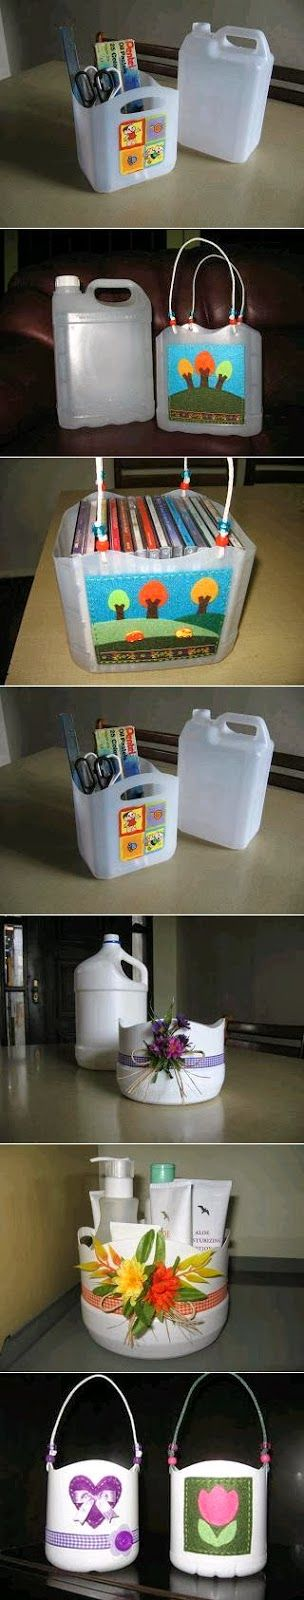 My DIY Projects: Recycling Plastic Bottle Baskets